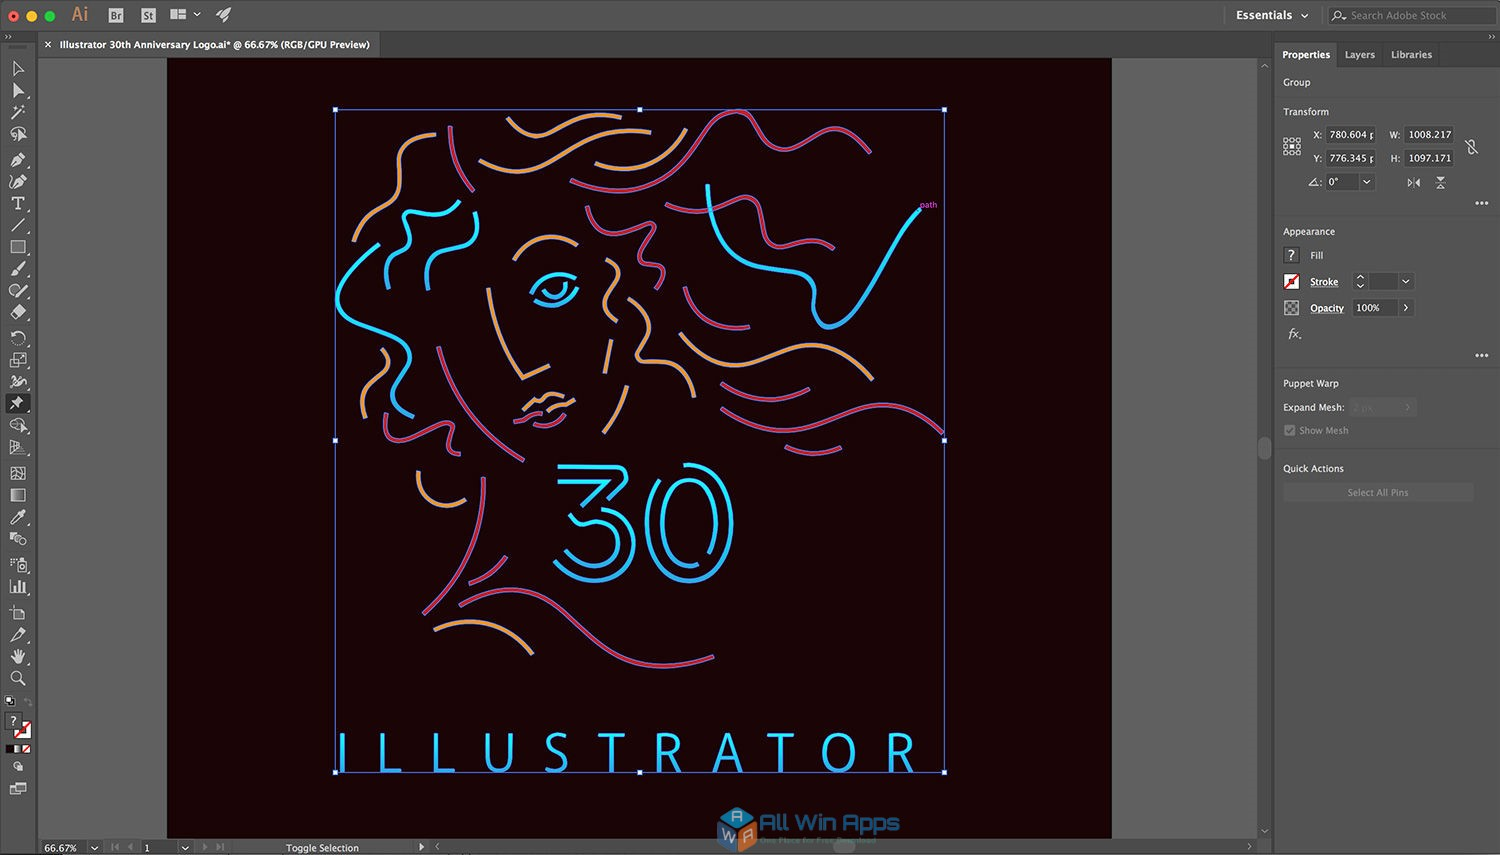 Adobe Illustrator CC 2018 Offline Installer Download